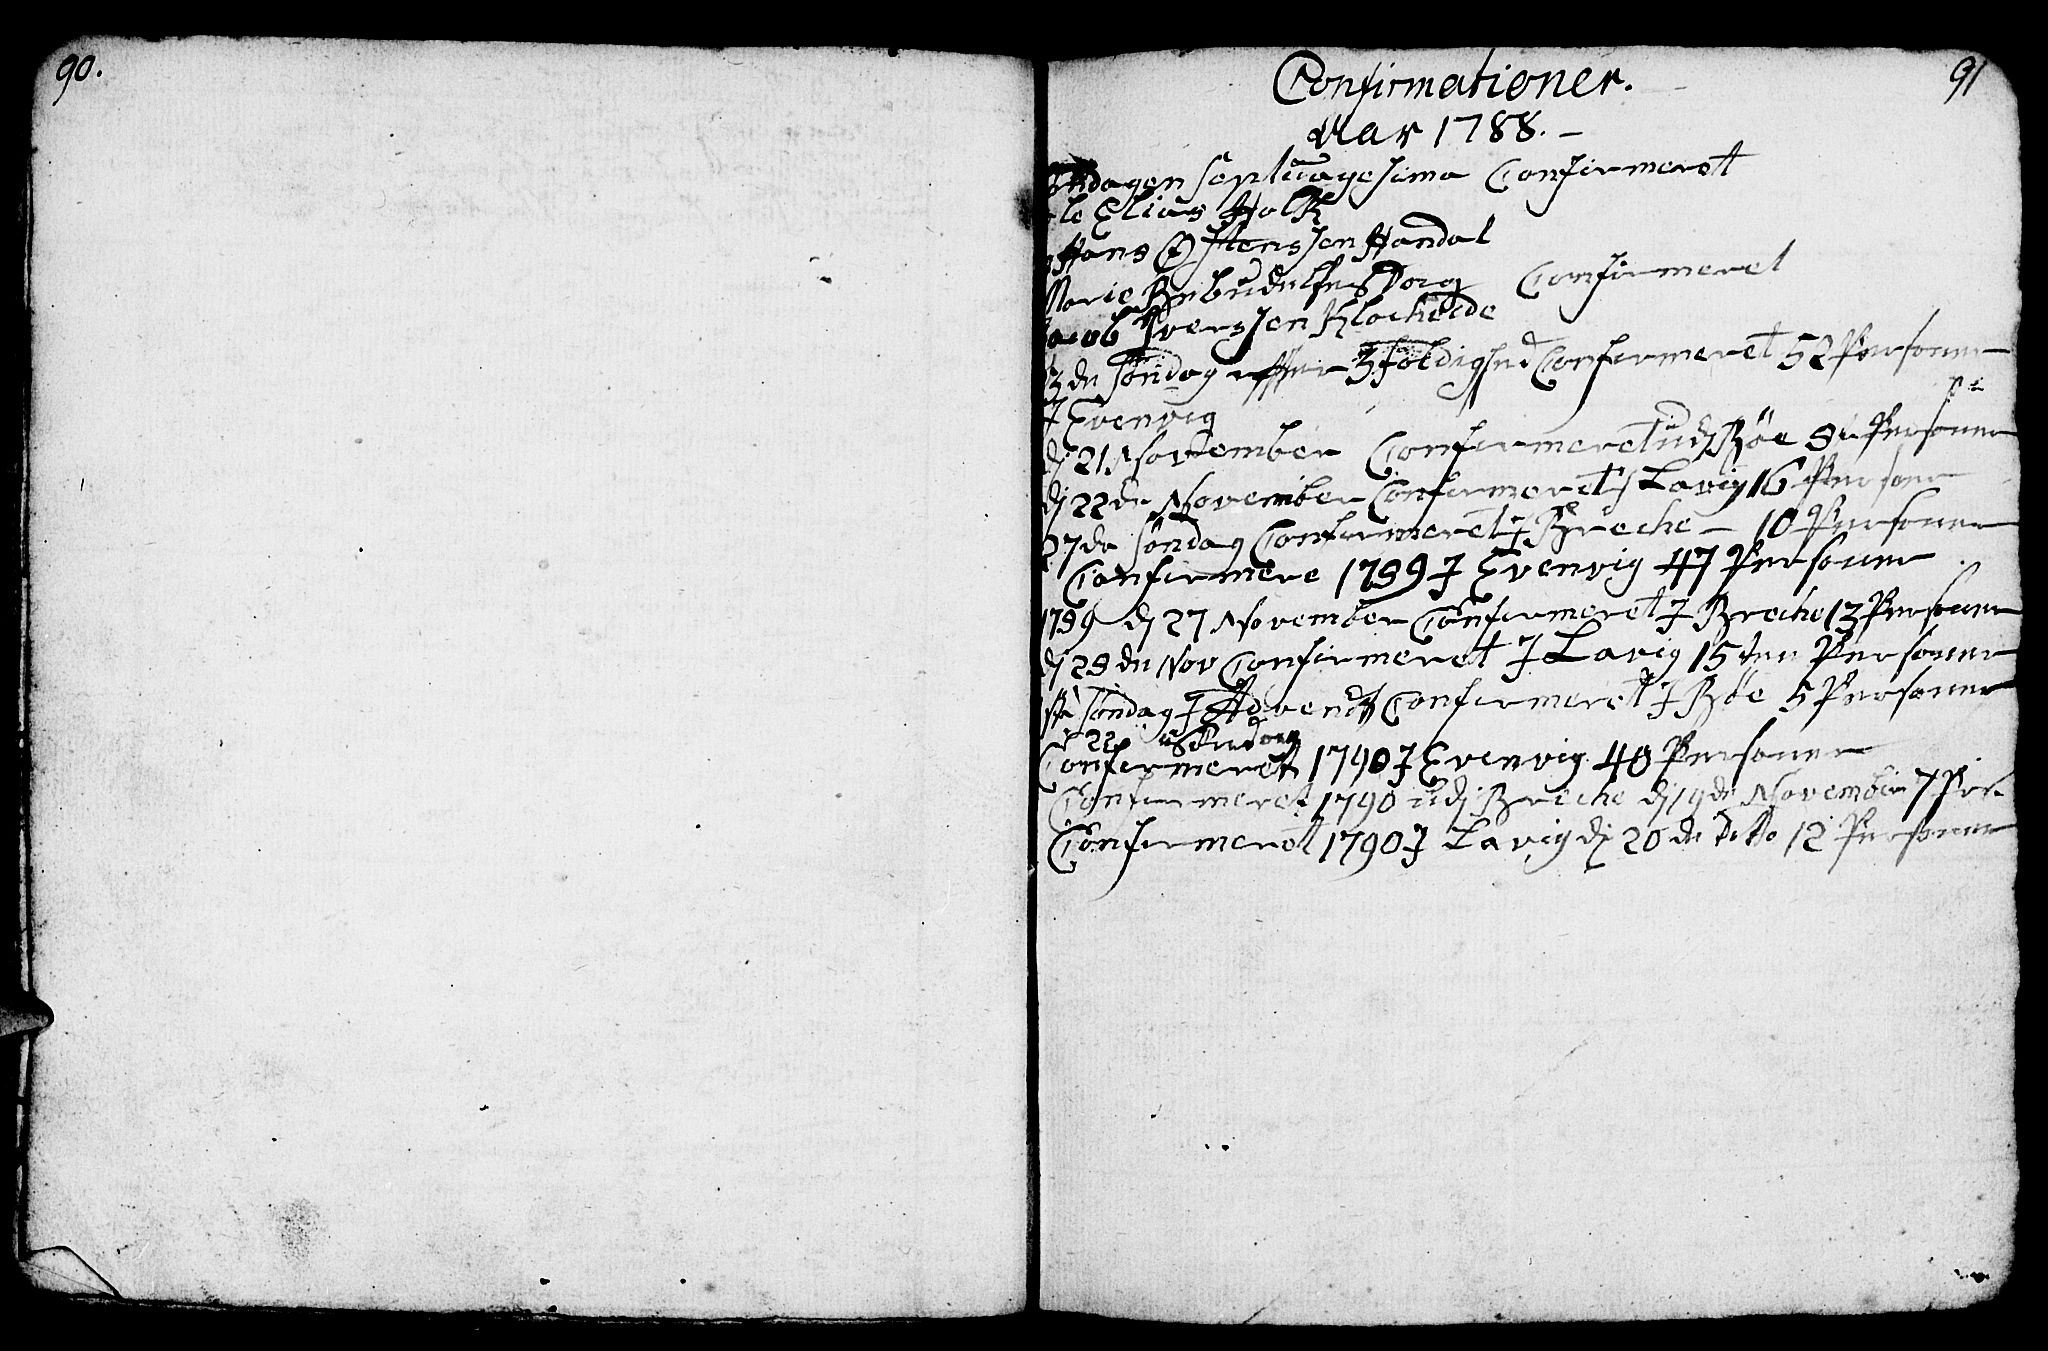 SAB, Gulen Sokneprestembete, Parish register (copy) no. A 1, 1786-1791, p. 109